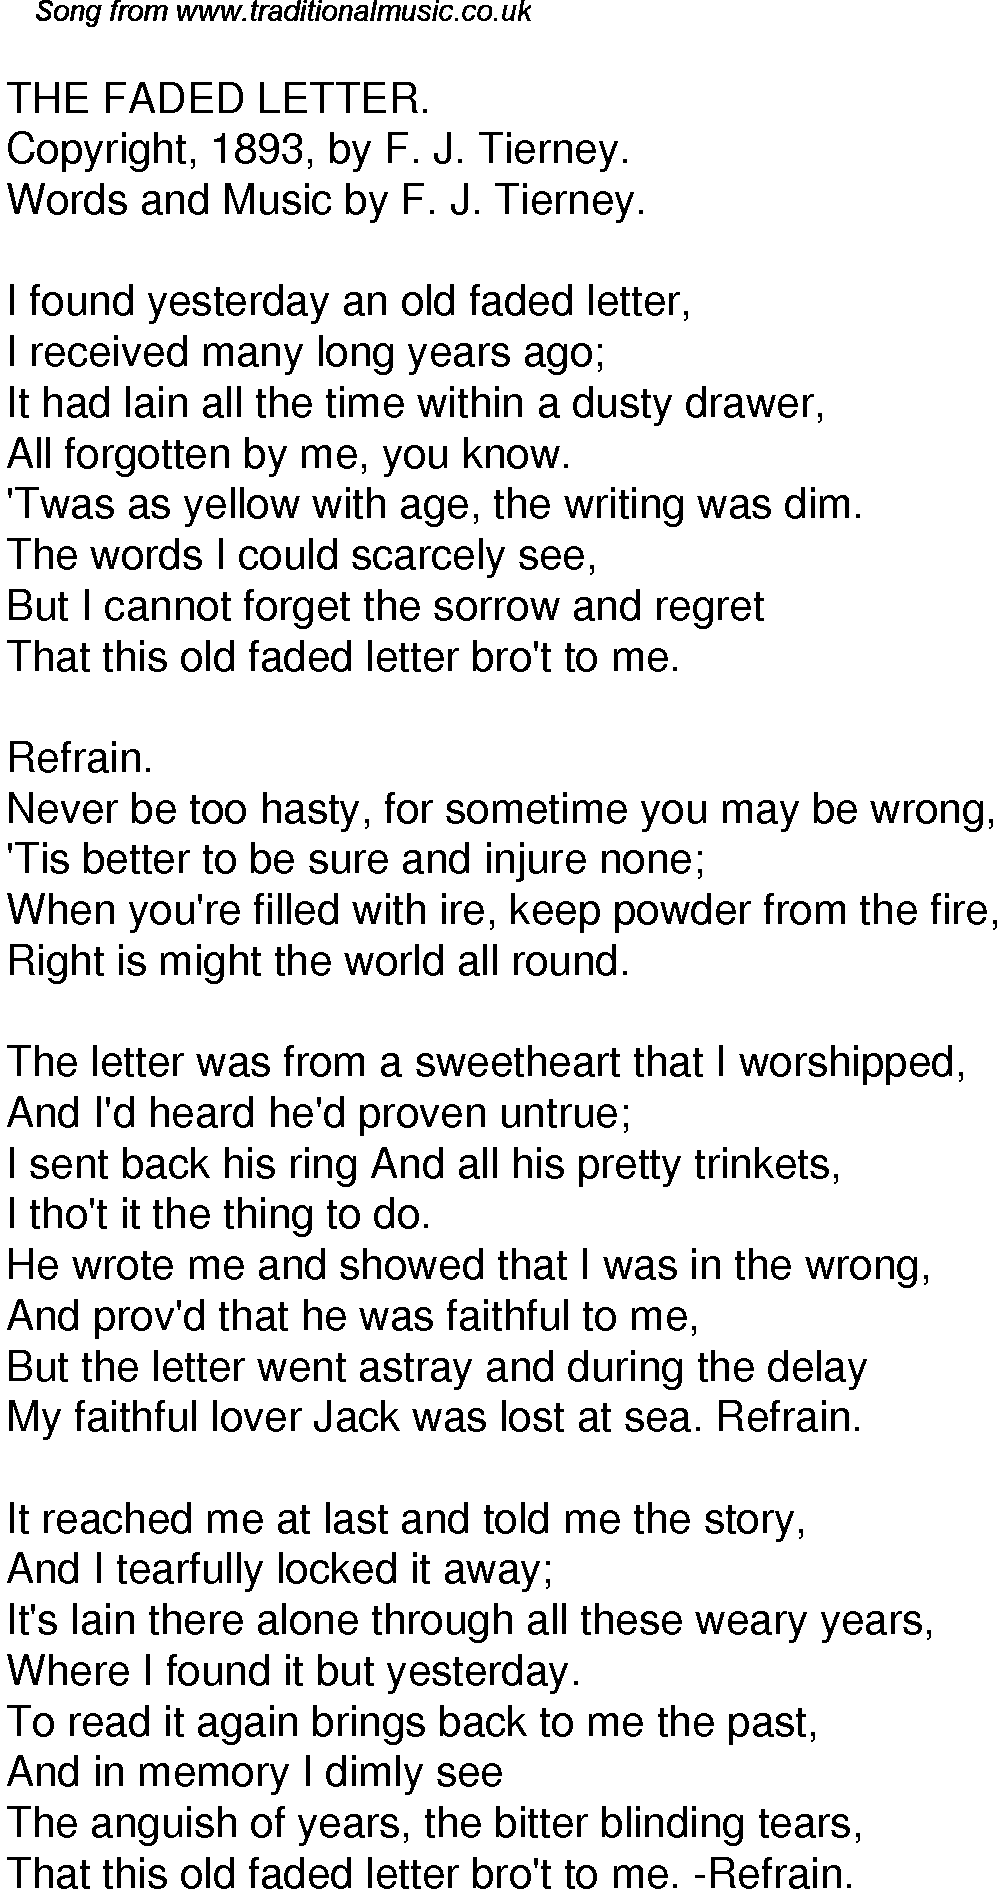 Old Time Song Lyrics for 41 The Faded Letter